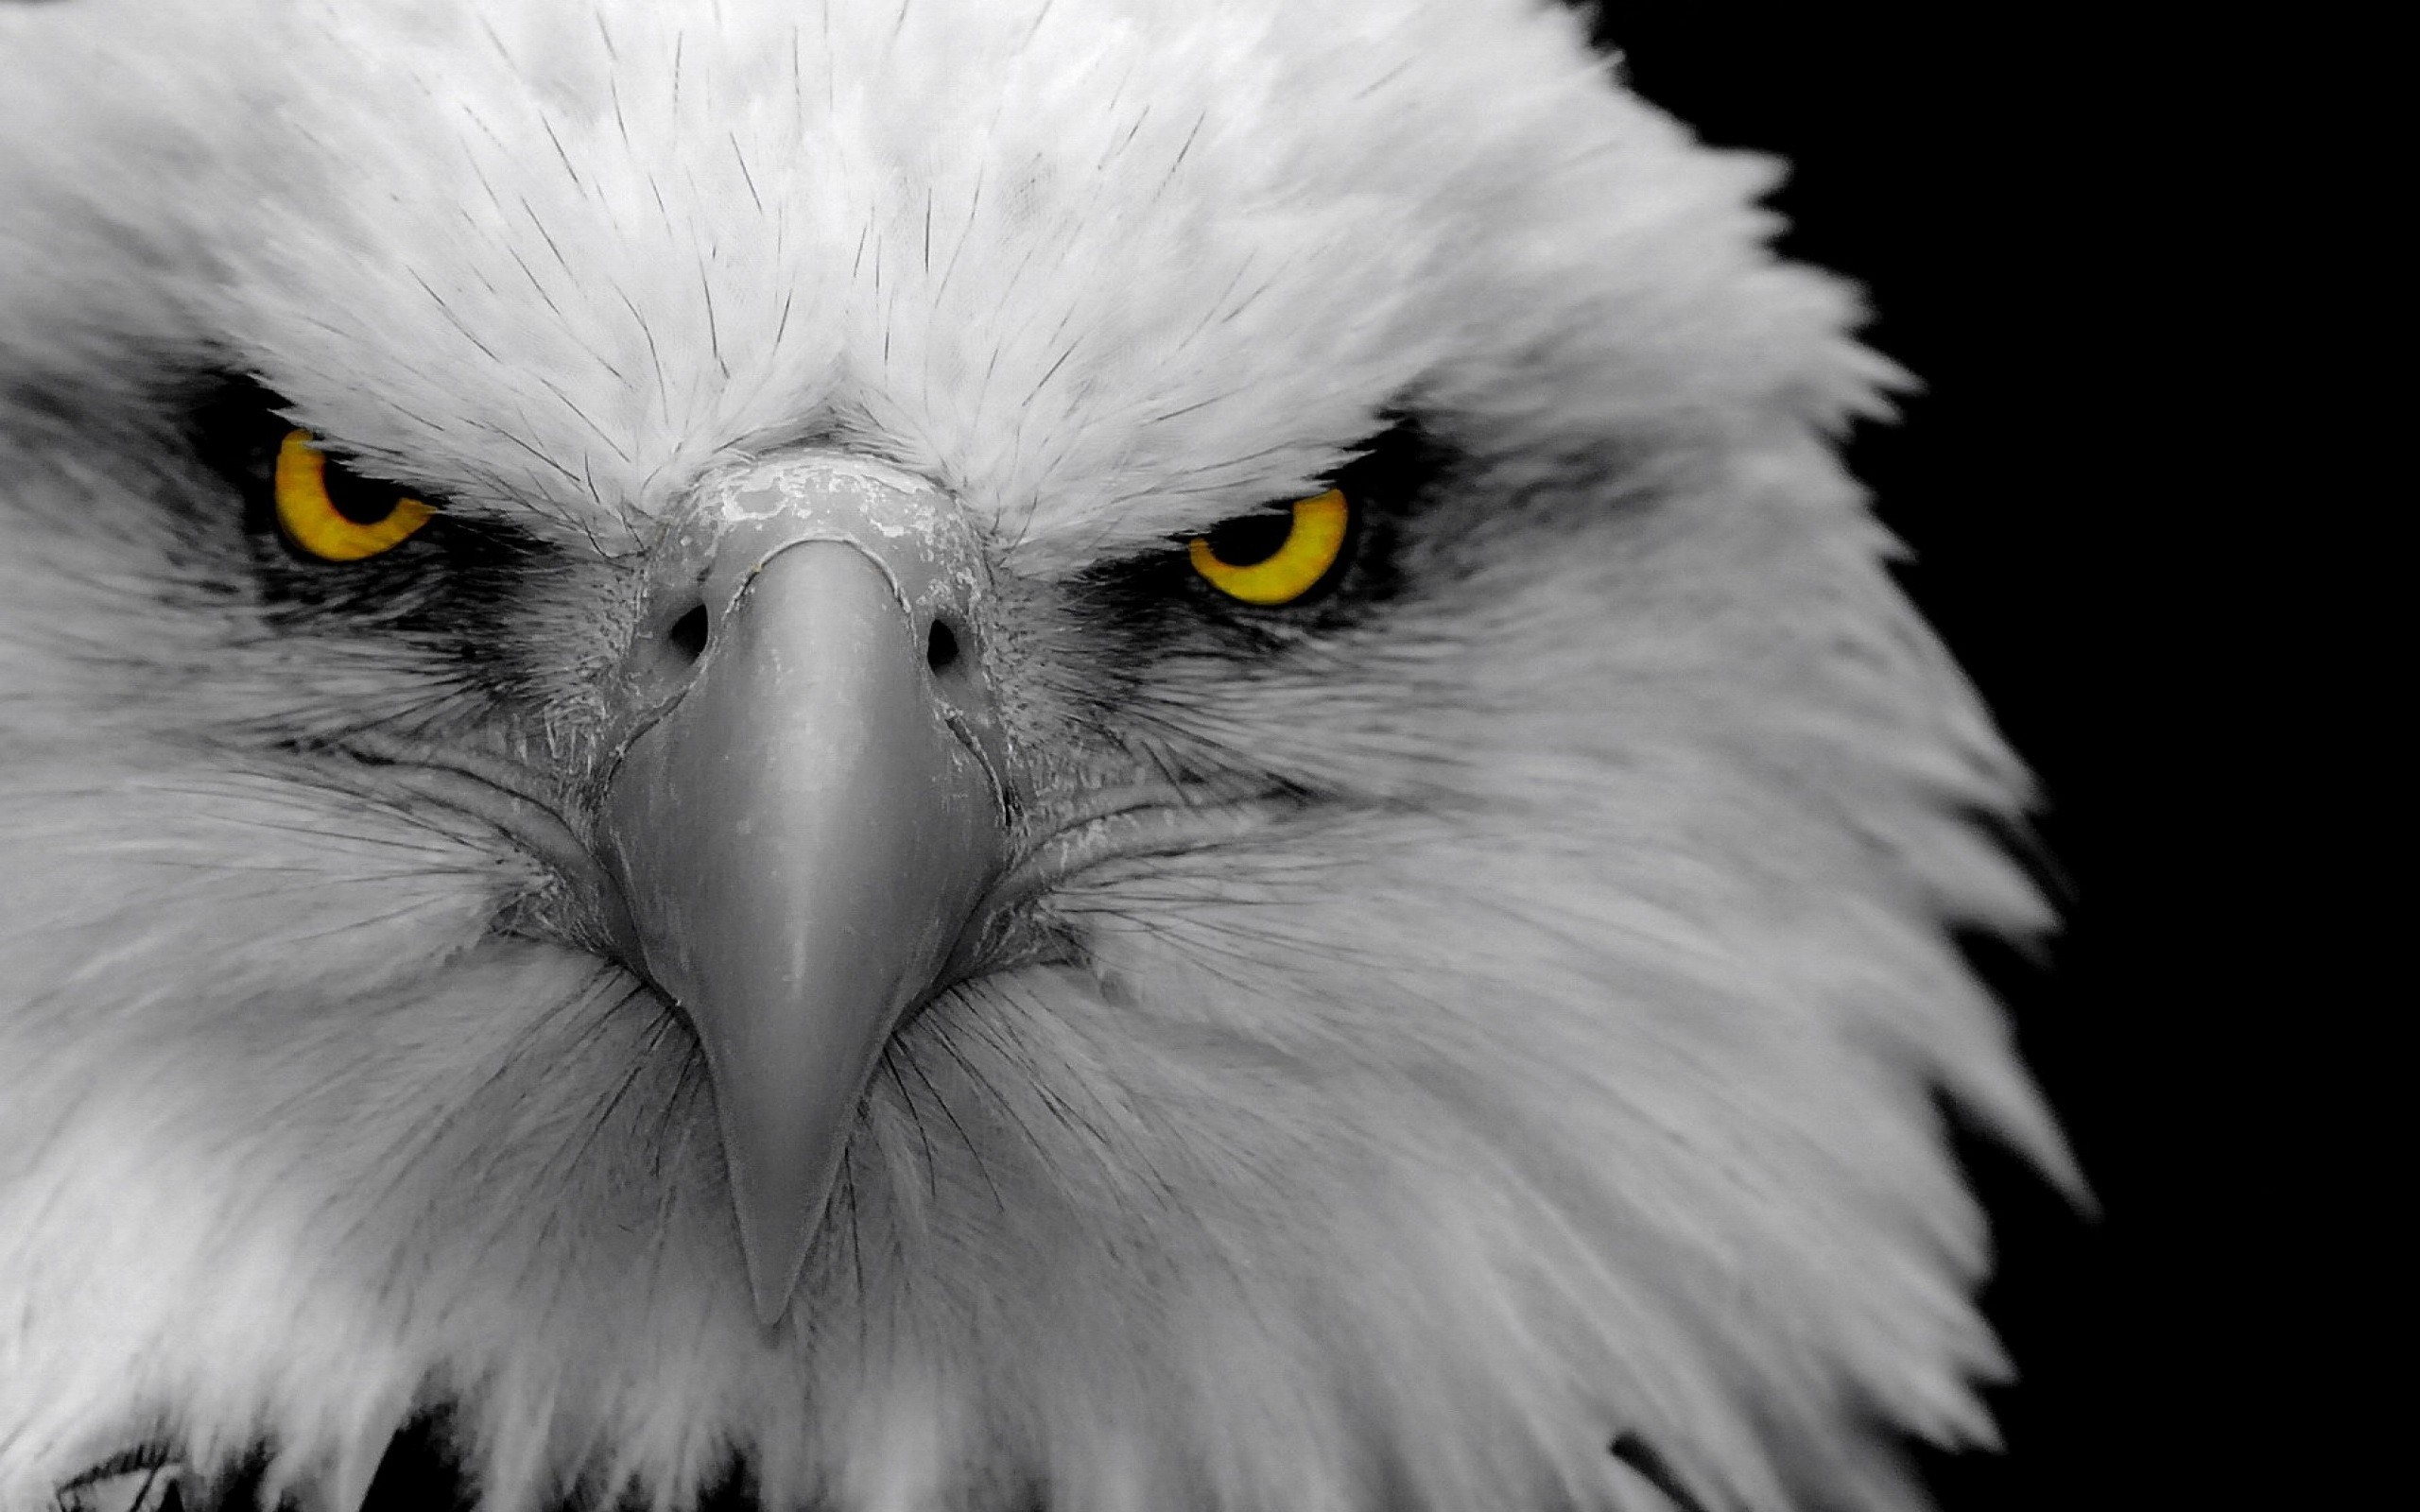 Eagle Up Close Wallpaper 42010 2560x1600 px